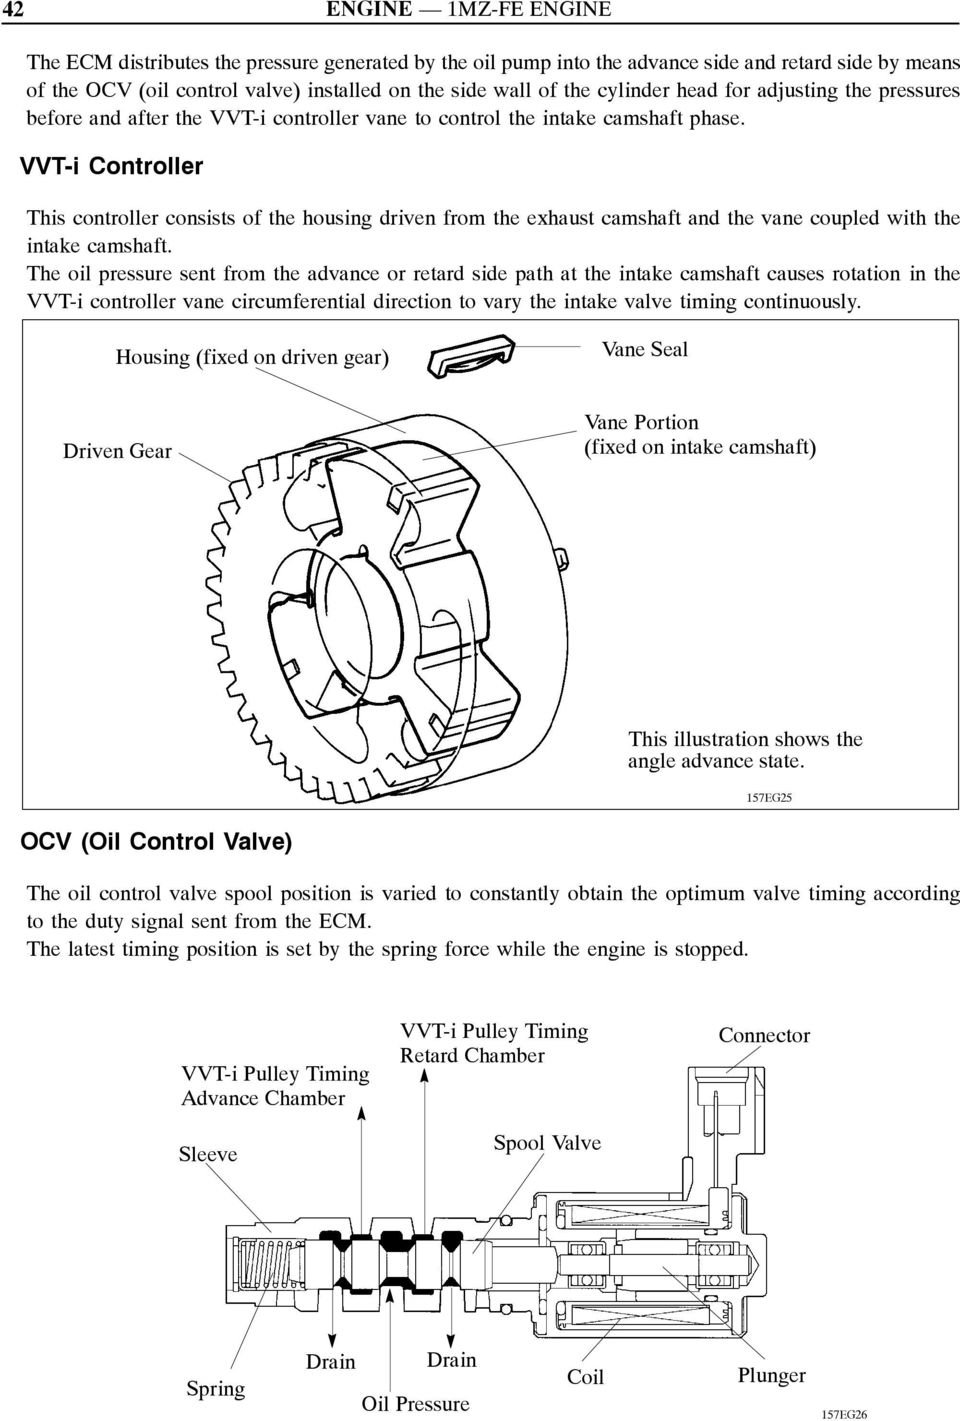 Engine Control System Pdf Valve Timing Diagram Vvt I Controller This Consists Of The Housing Driven From Exhaust Camshaft And